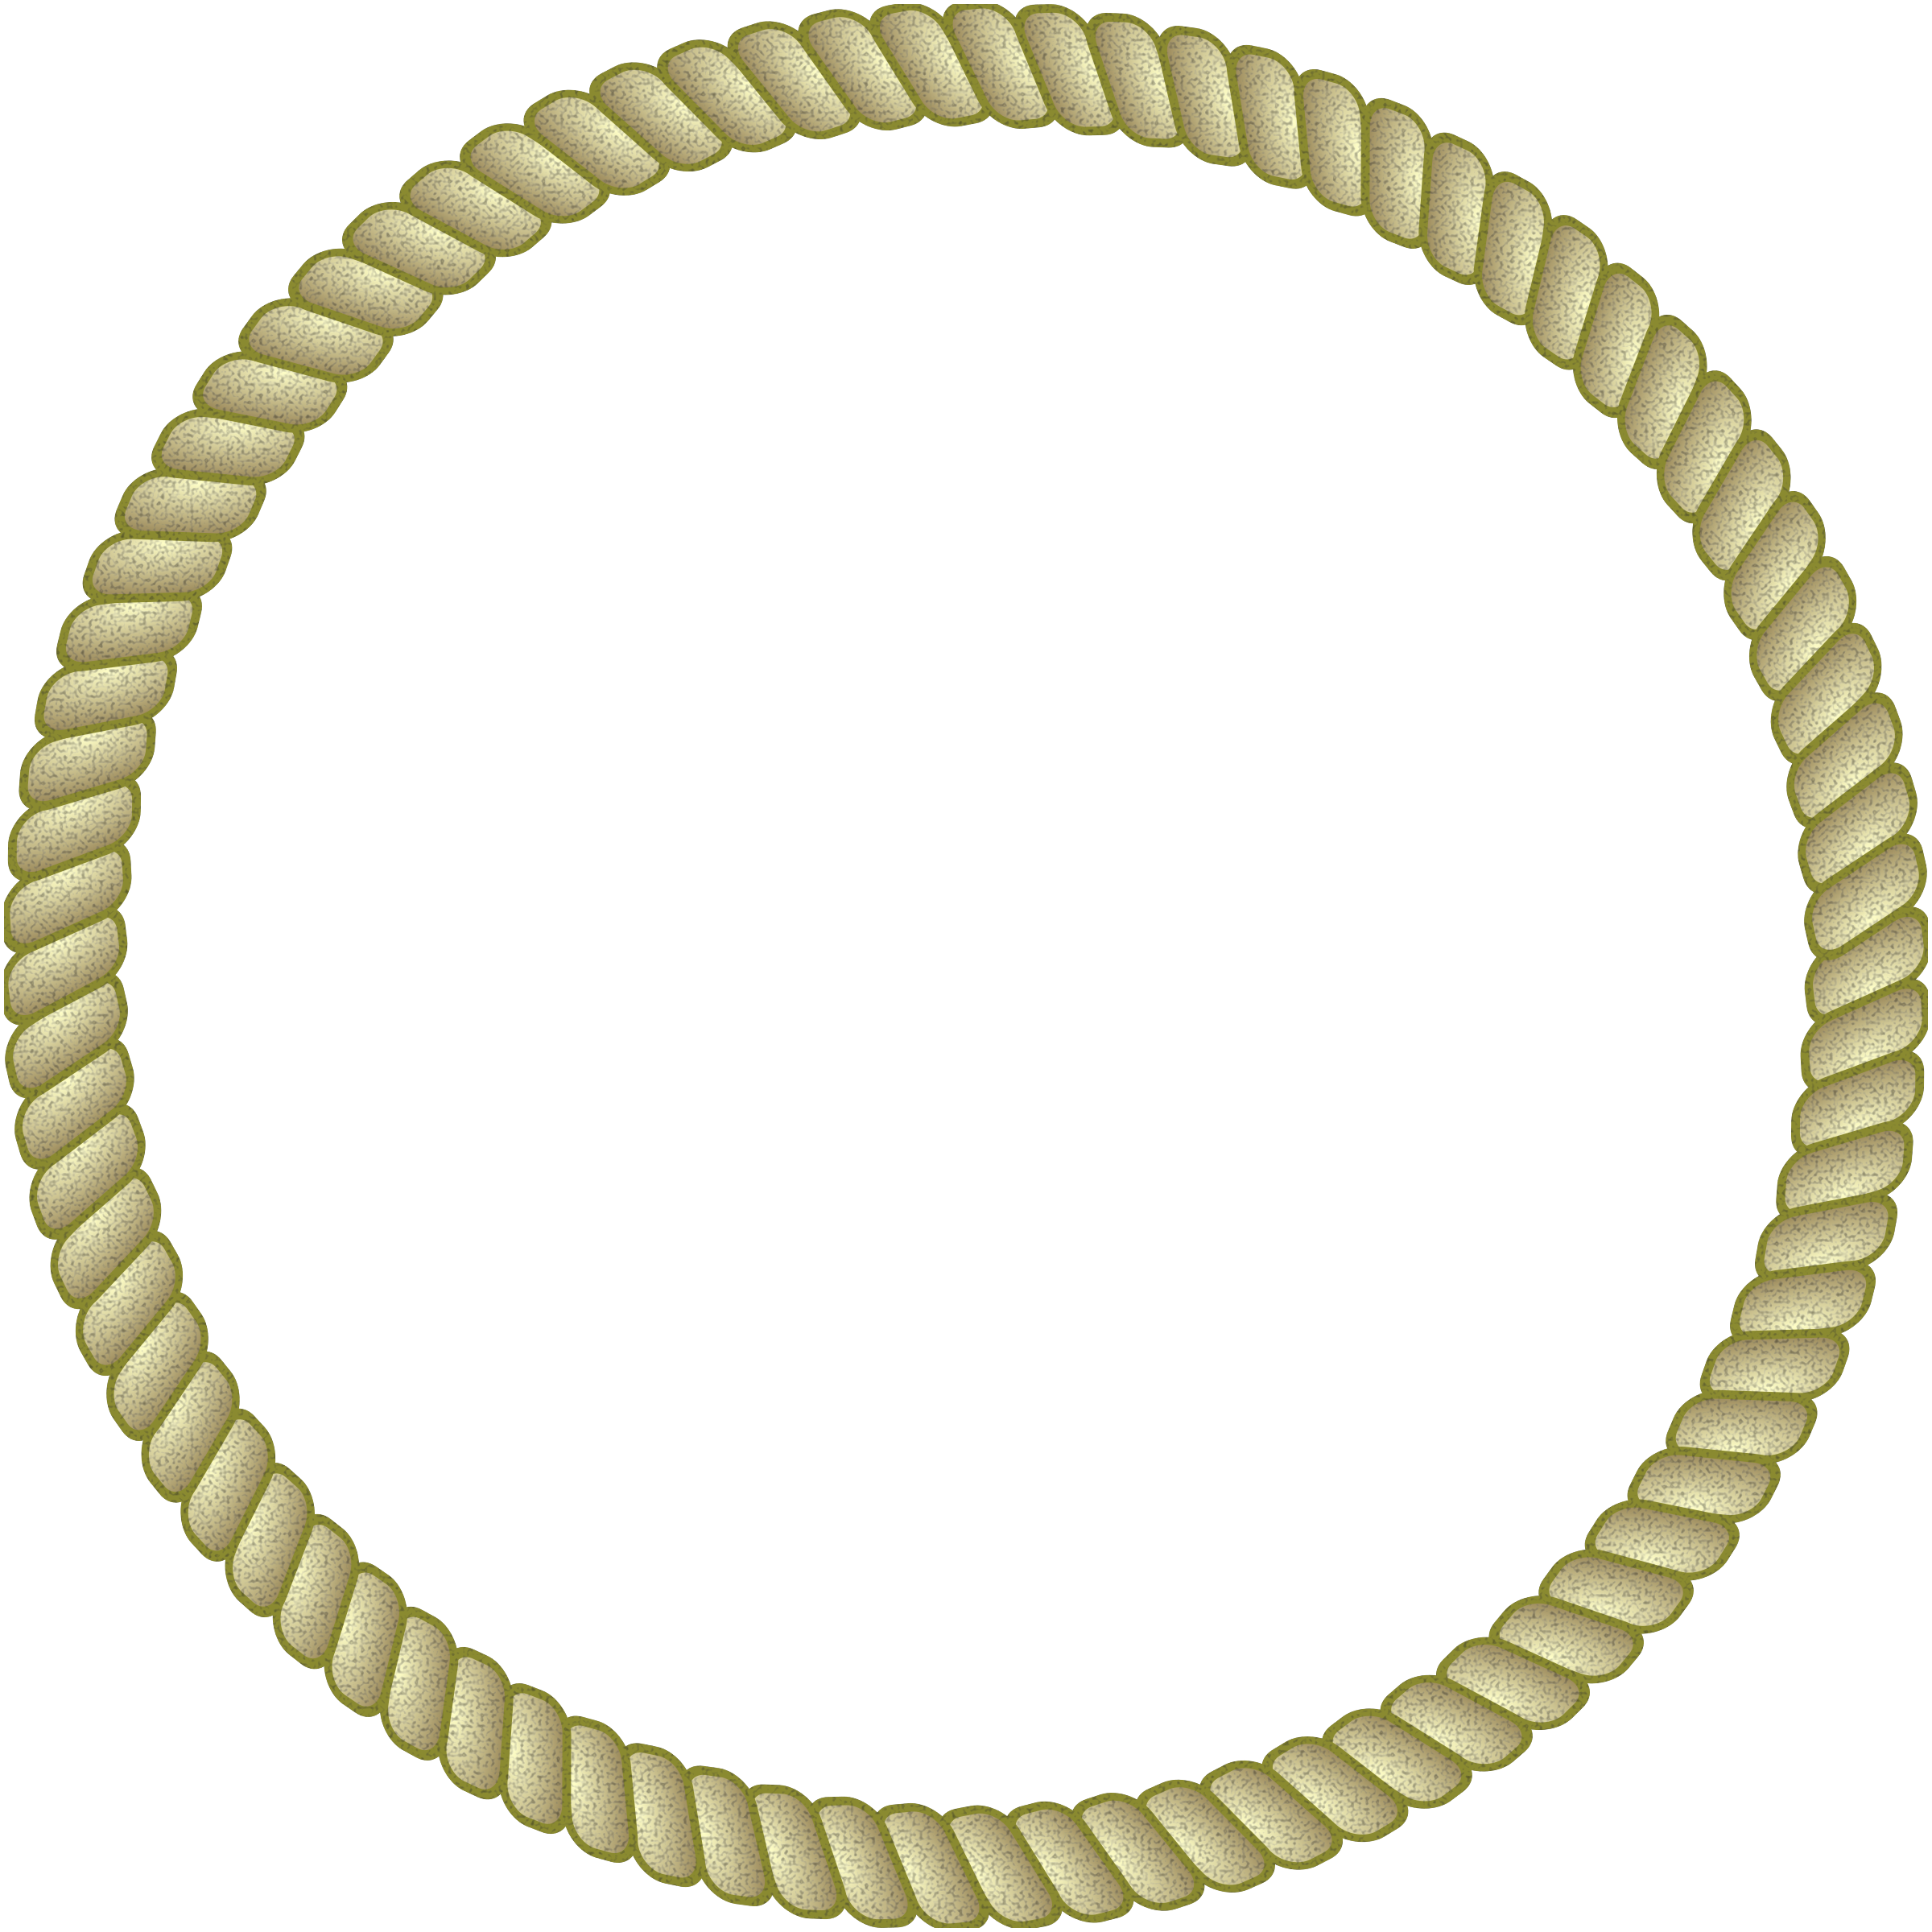 clipart rope border circle - photo #23